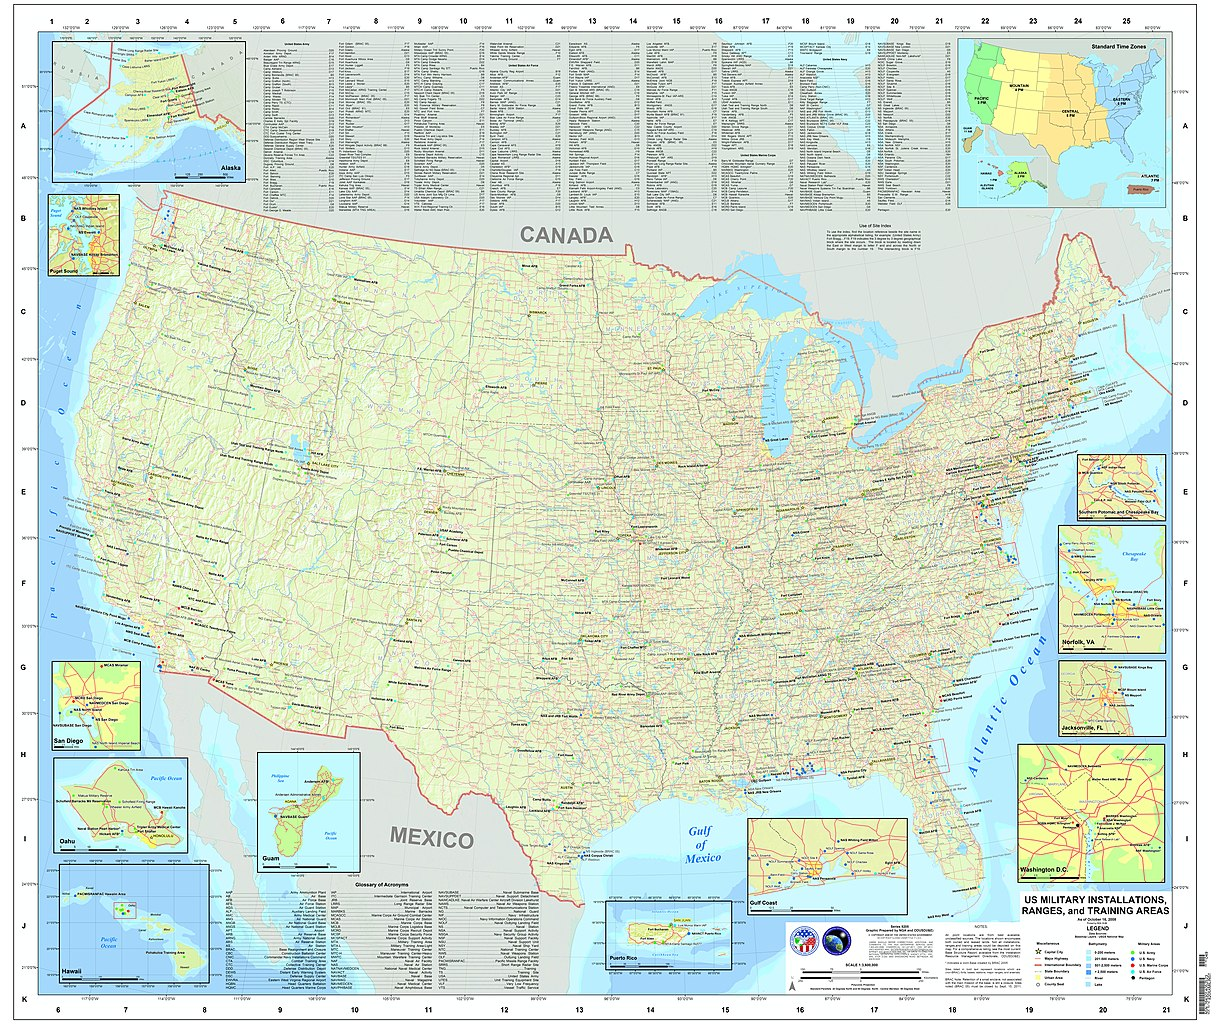 File:U.S. Military Installations Map.jpg - Wikimedia Commons